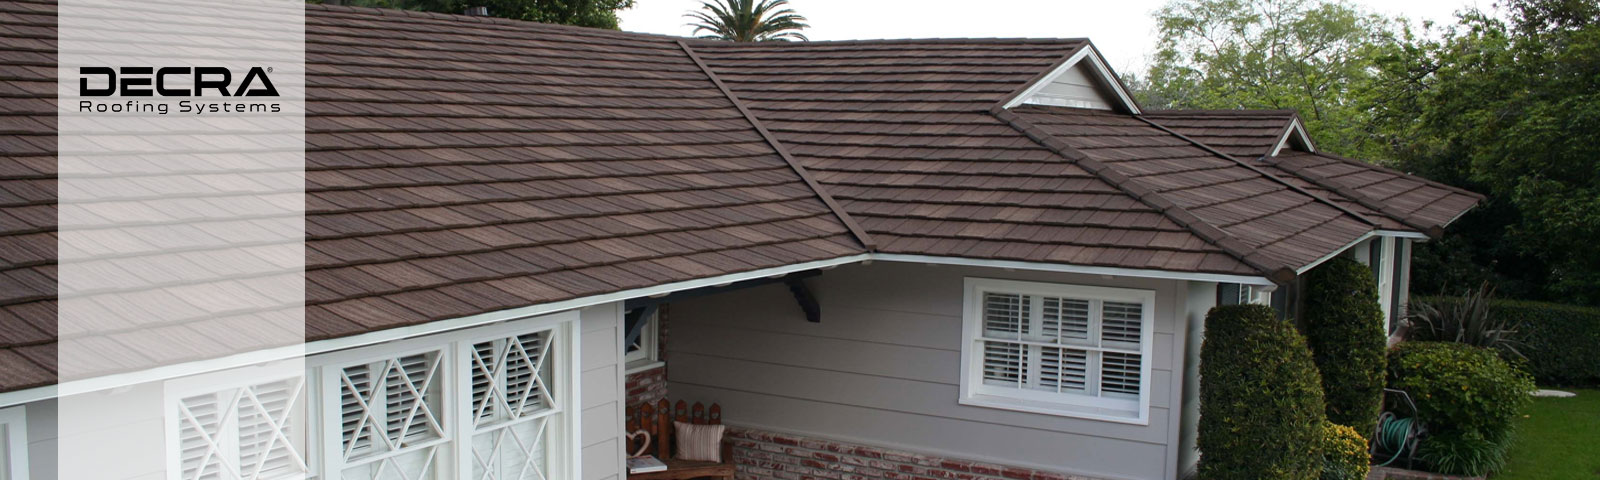 Westco Roofing Co. Inc. Images